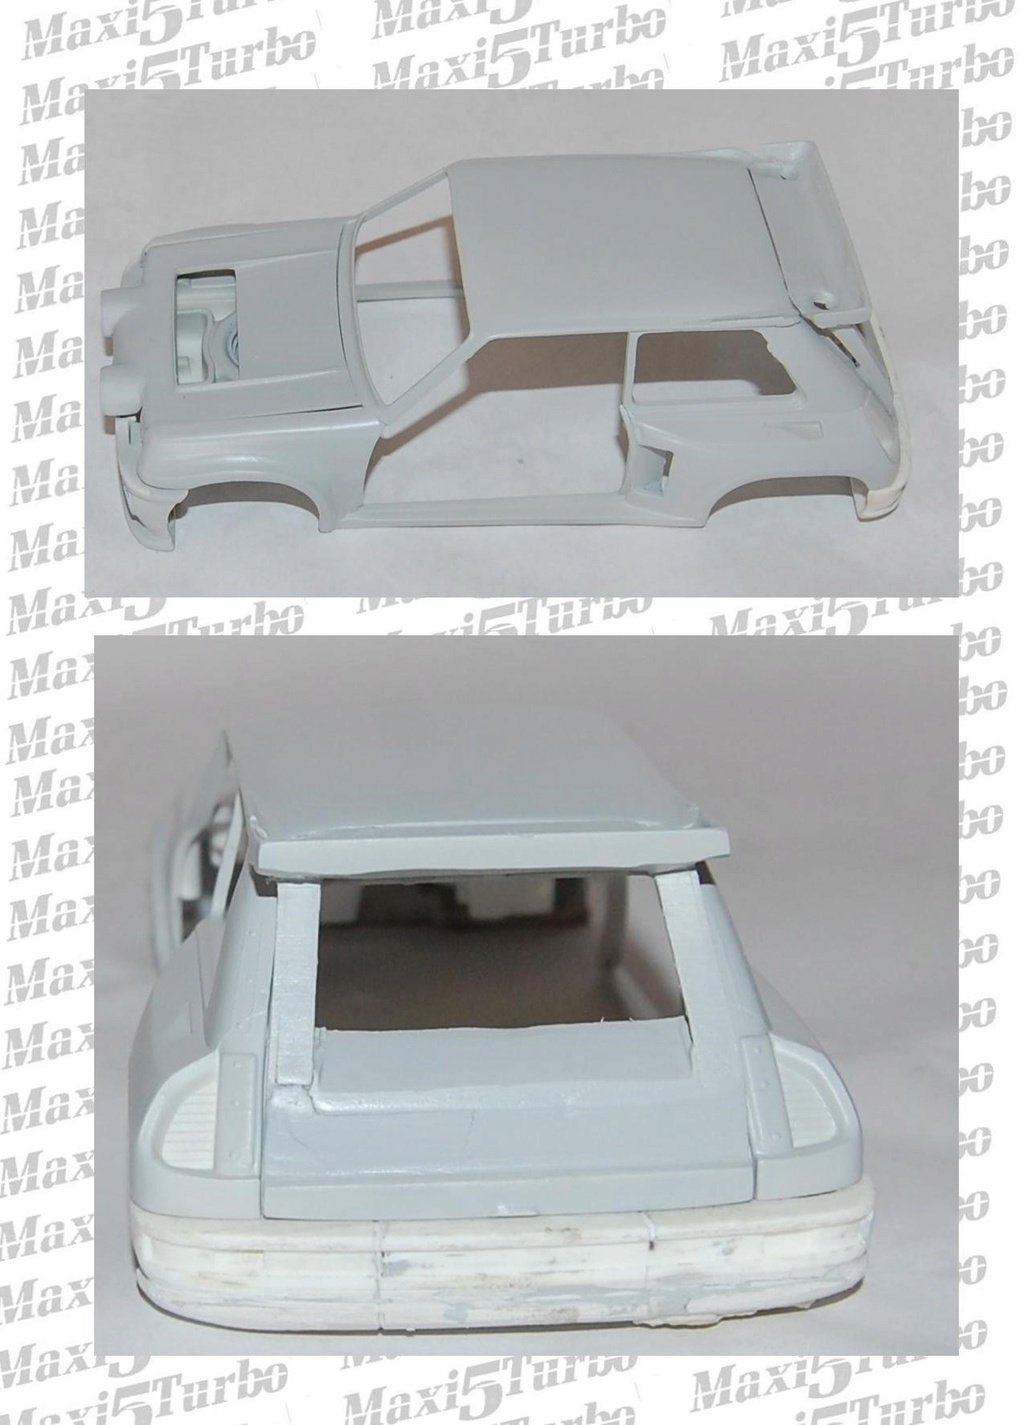 (1/24) Renault 5 Maxi turbo Ref 80717 ( Hors delai ) - Page 3 4110